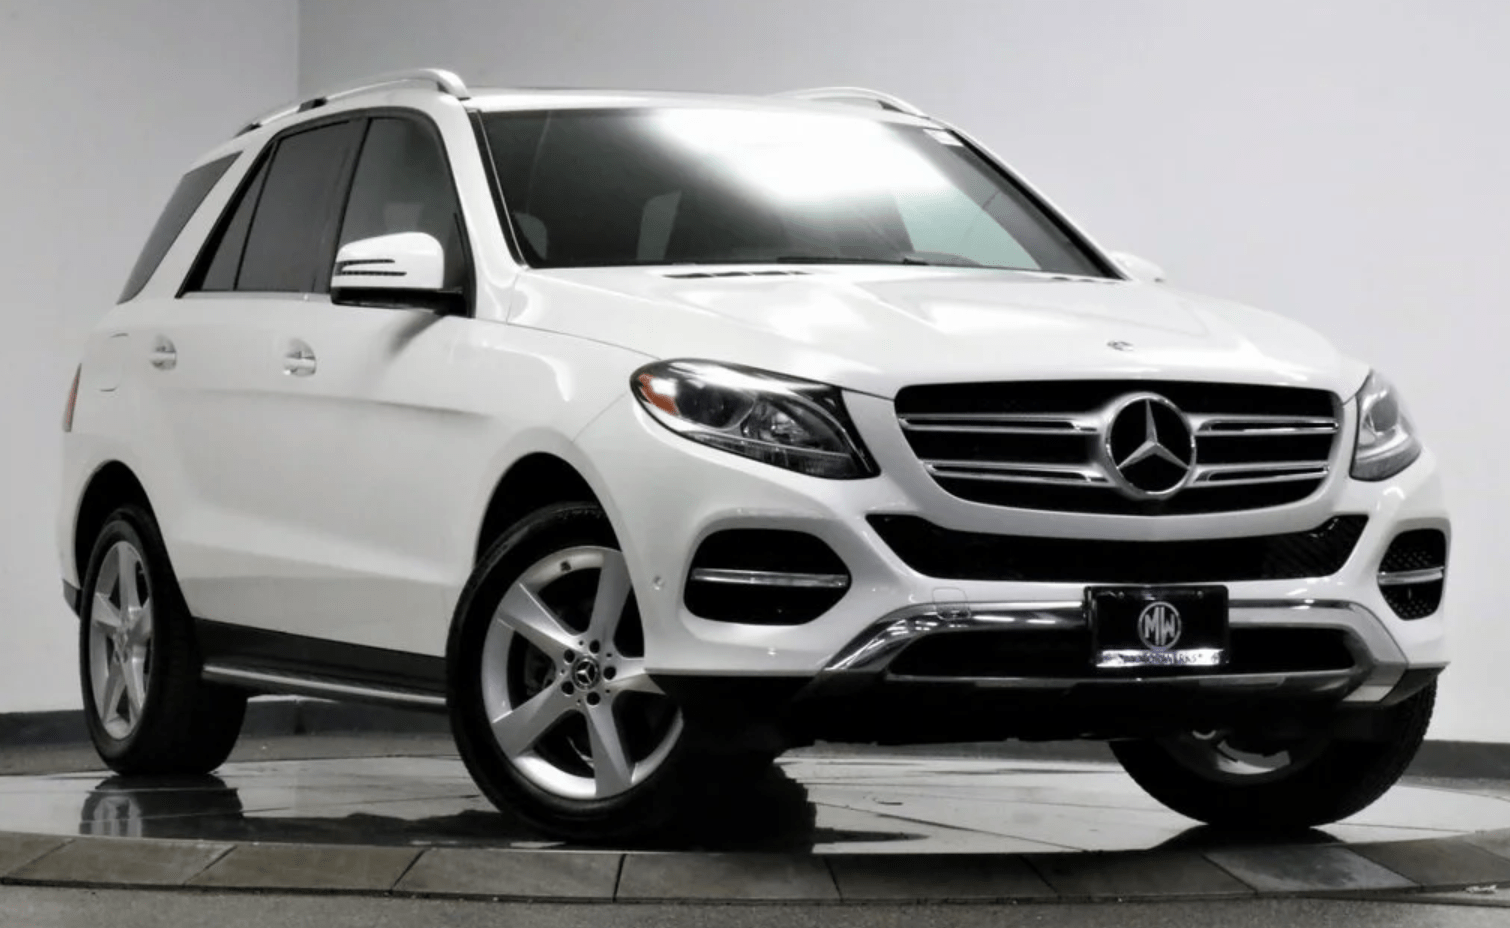 2021 Mercedes Benz GLC Class Release Date, Price, Redesign